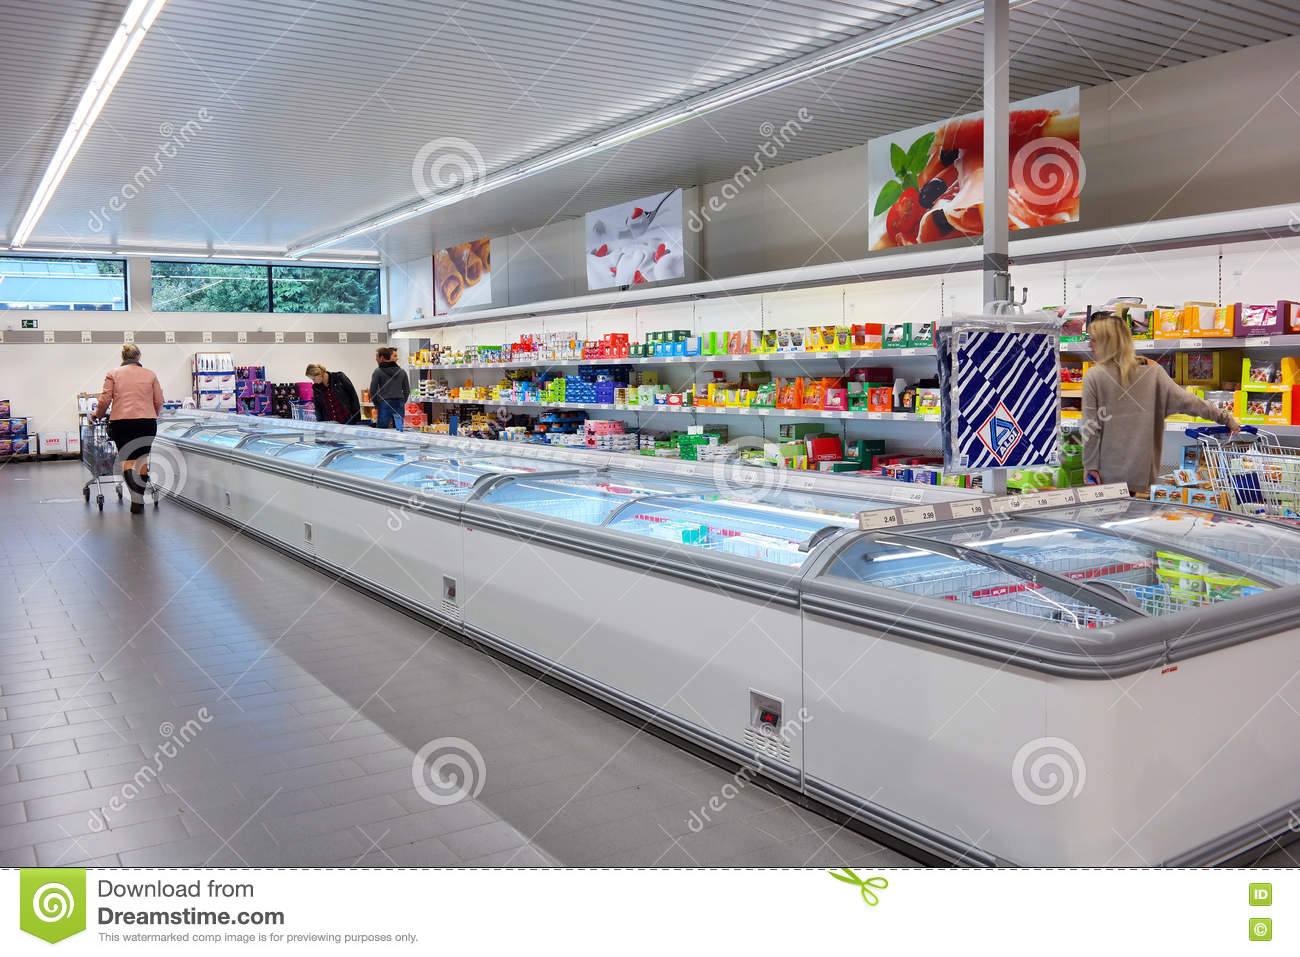 Aldi stock photos royalty free pictures freezer section of an aldi supermarket belgium october 2015 interior of aldi supermarket biocorpaavc